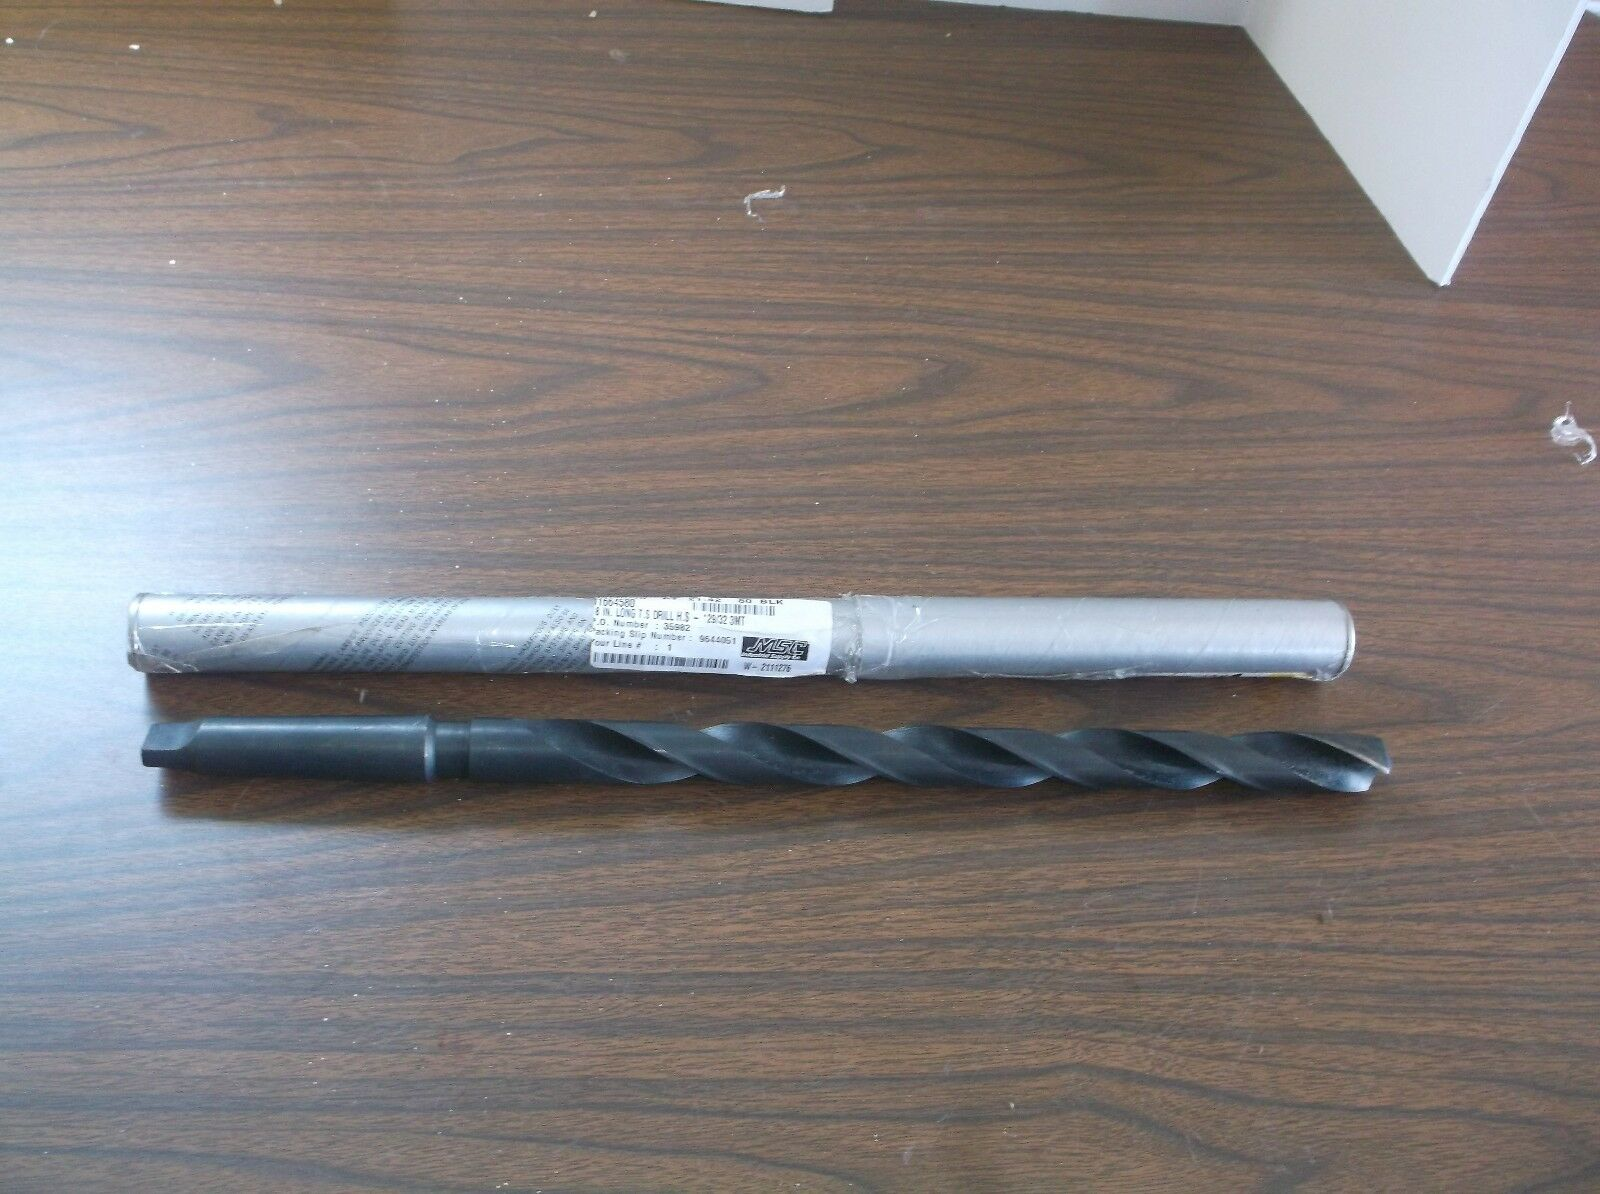 Interstate - 29 32 Inch, 3MT, High Speed Steel, 118 Degree Point Angle,(C10T)